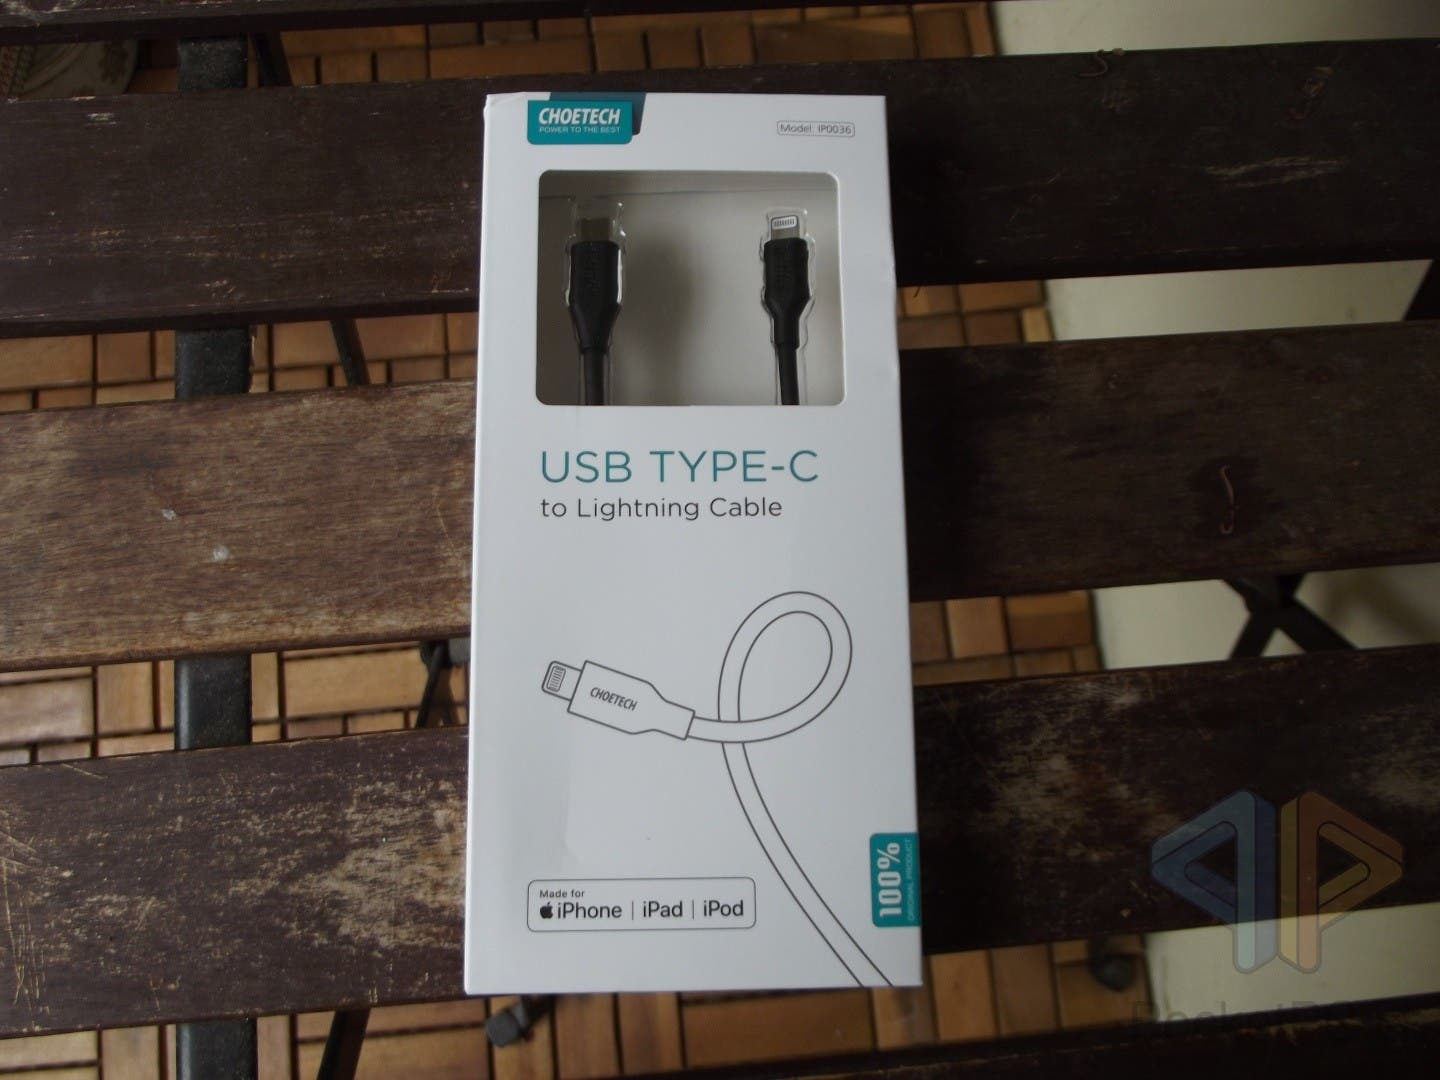 Choetech USB-C to Lightning Cable